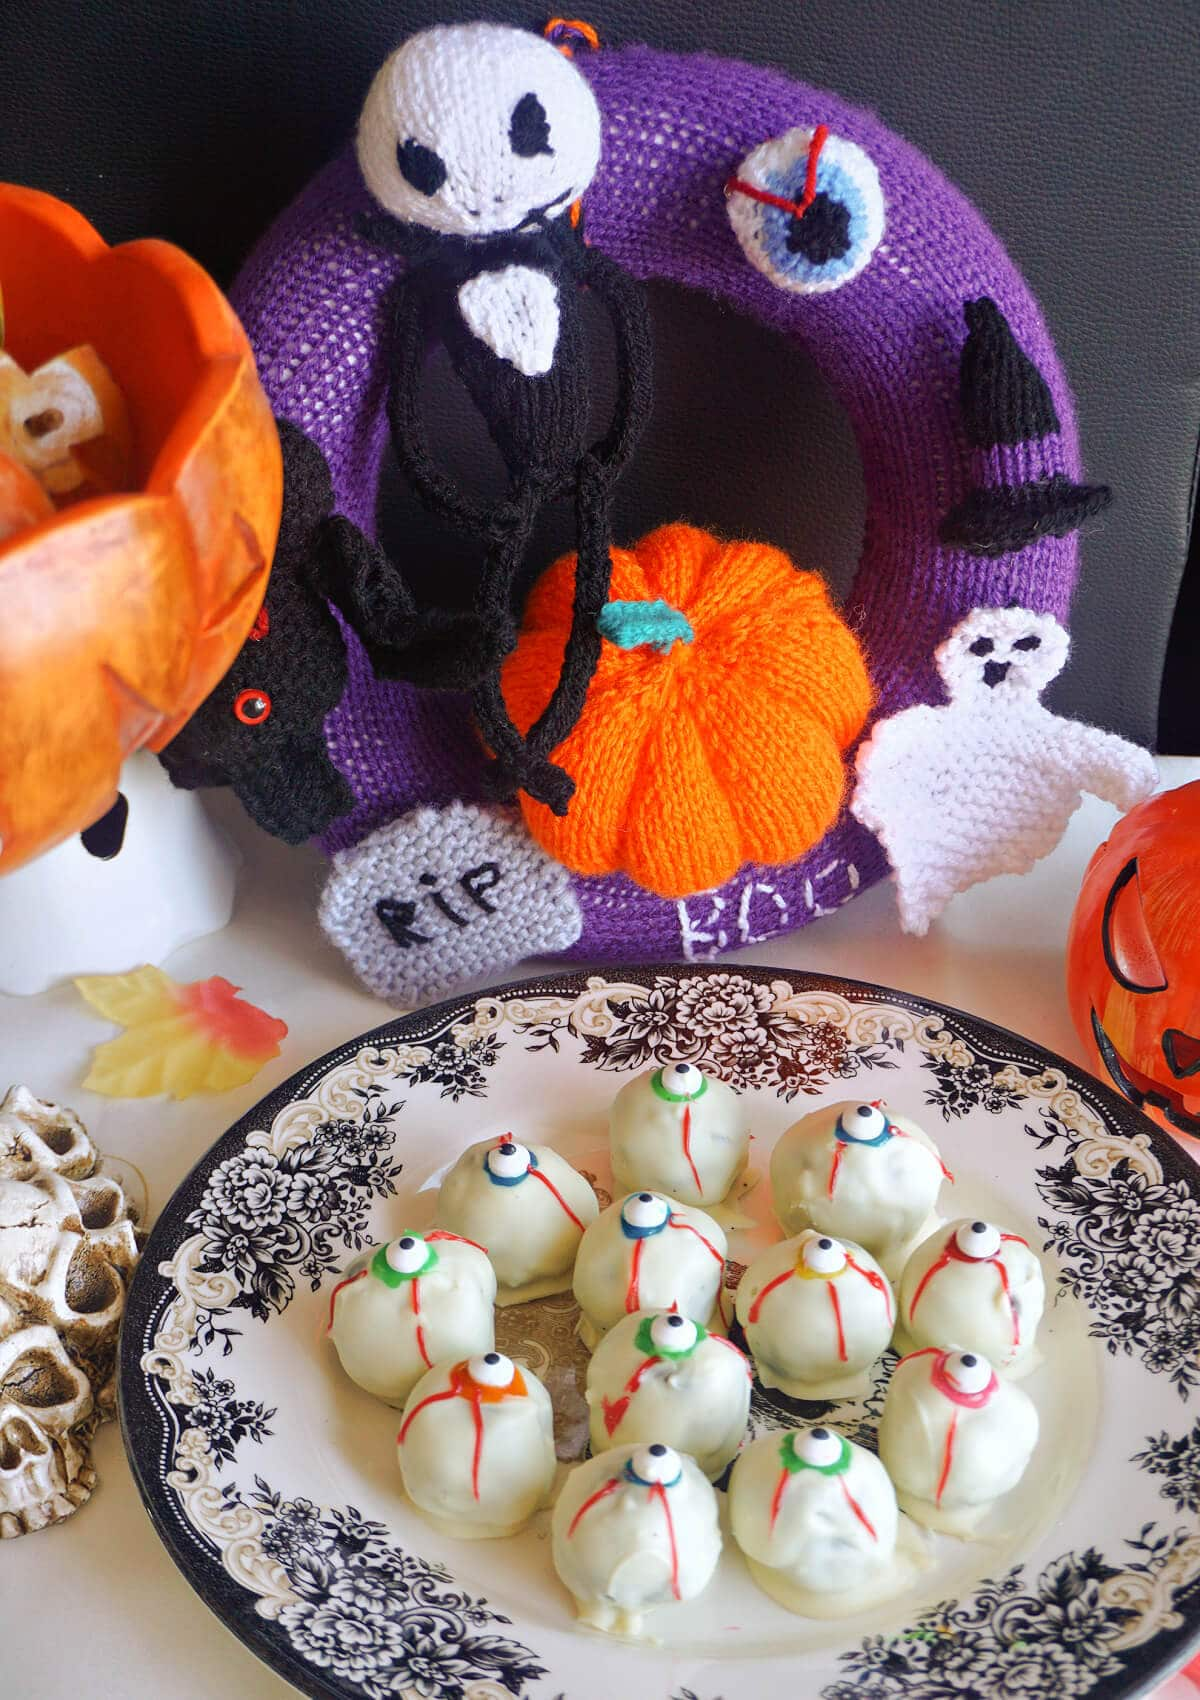 A plate with eyeball truffles surrounded by Halloween decorations